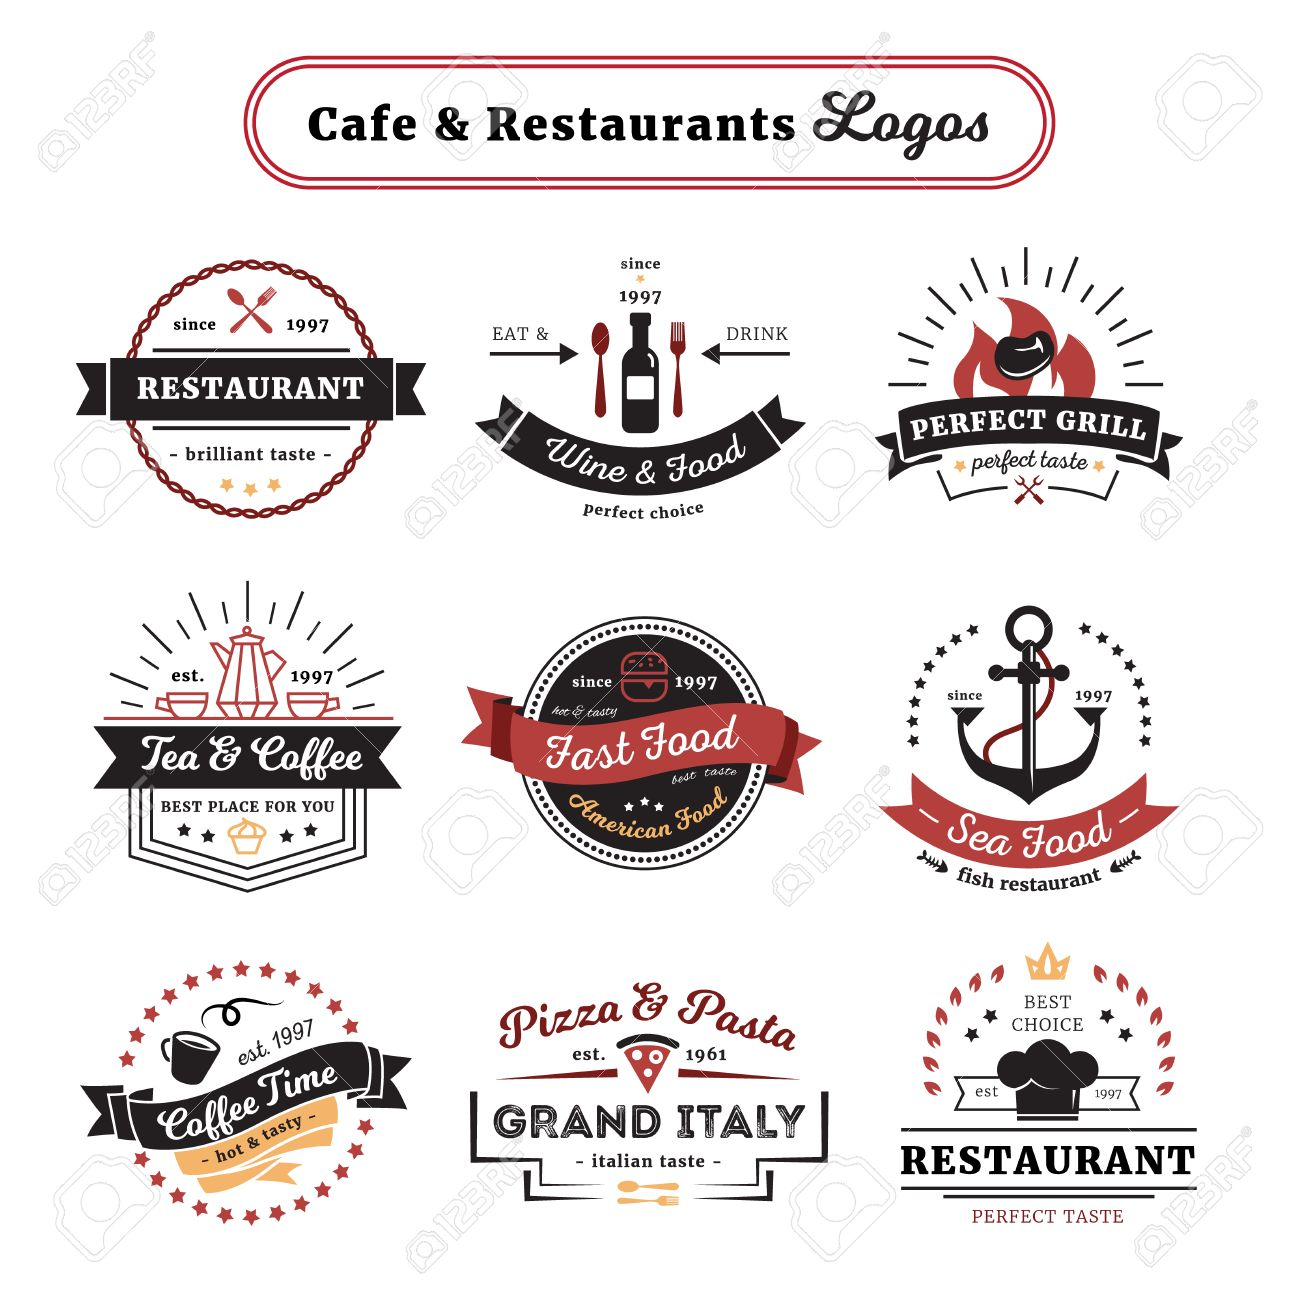 Cafe and restaurant logos vintage design with food and drinks cafe and restaurant logos vintage design with food and drinks cutlery and crockery isolated vector illustration buycottarizona Image collections